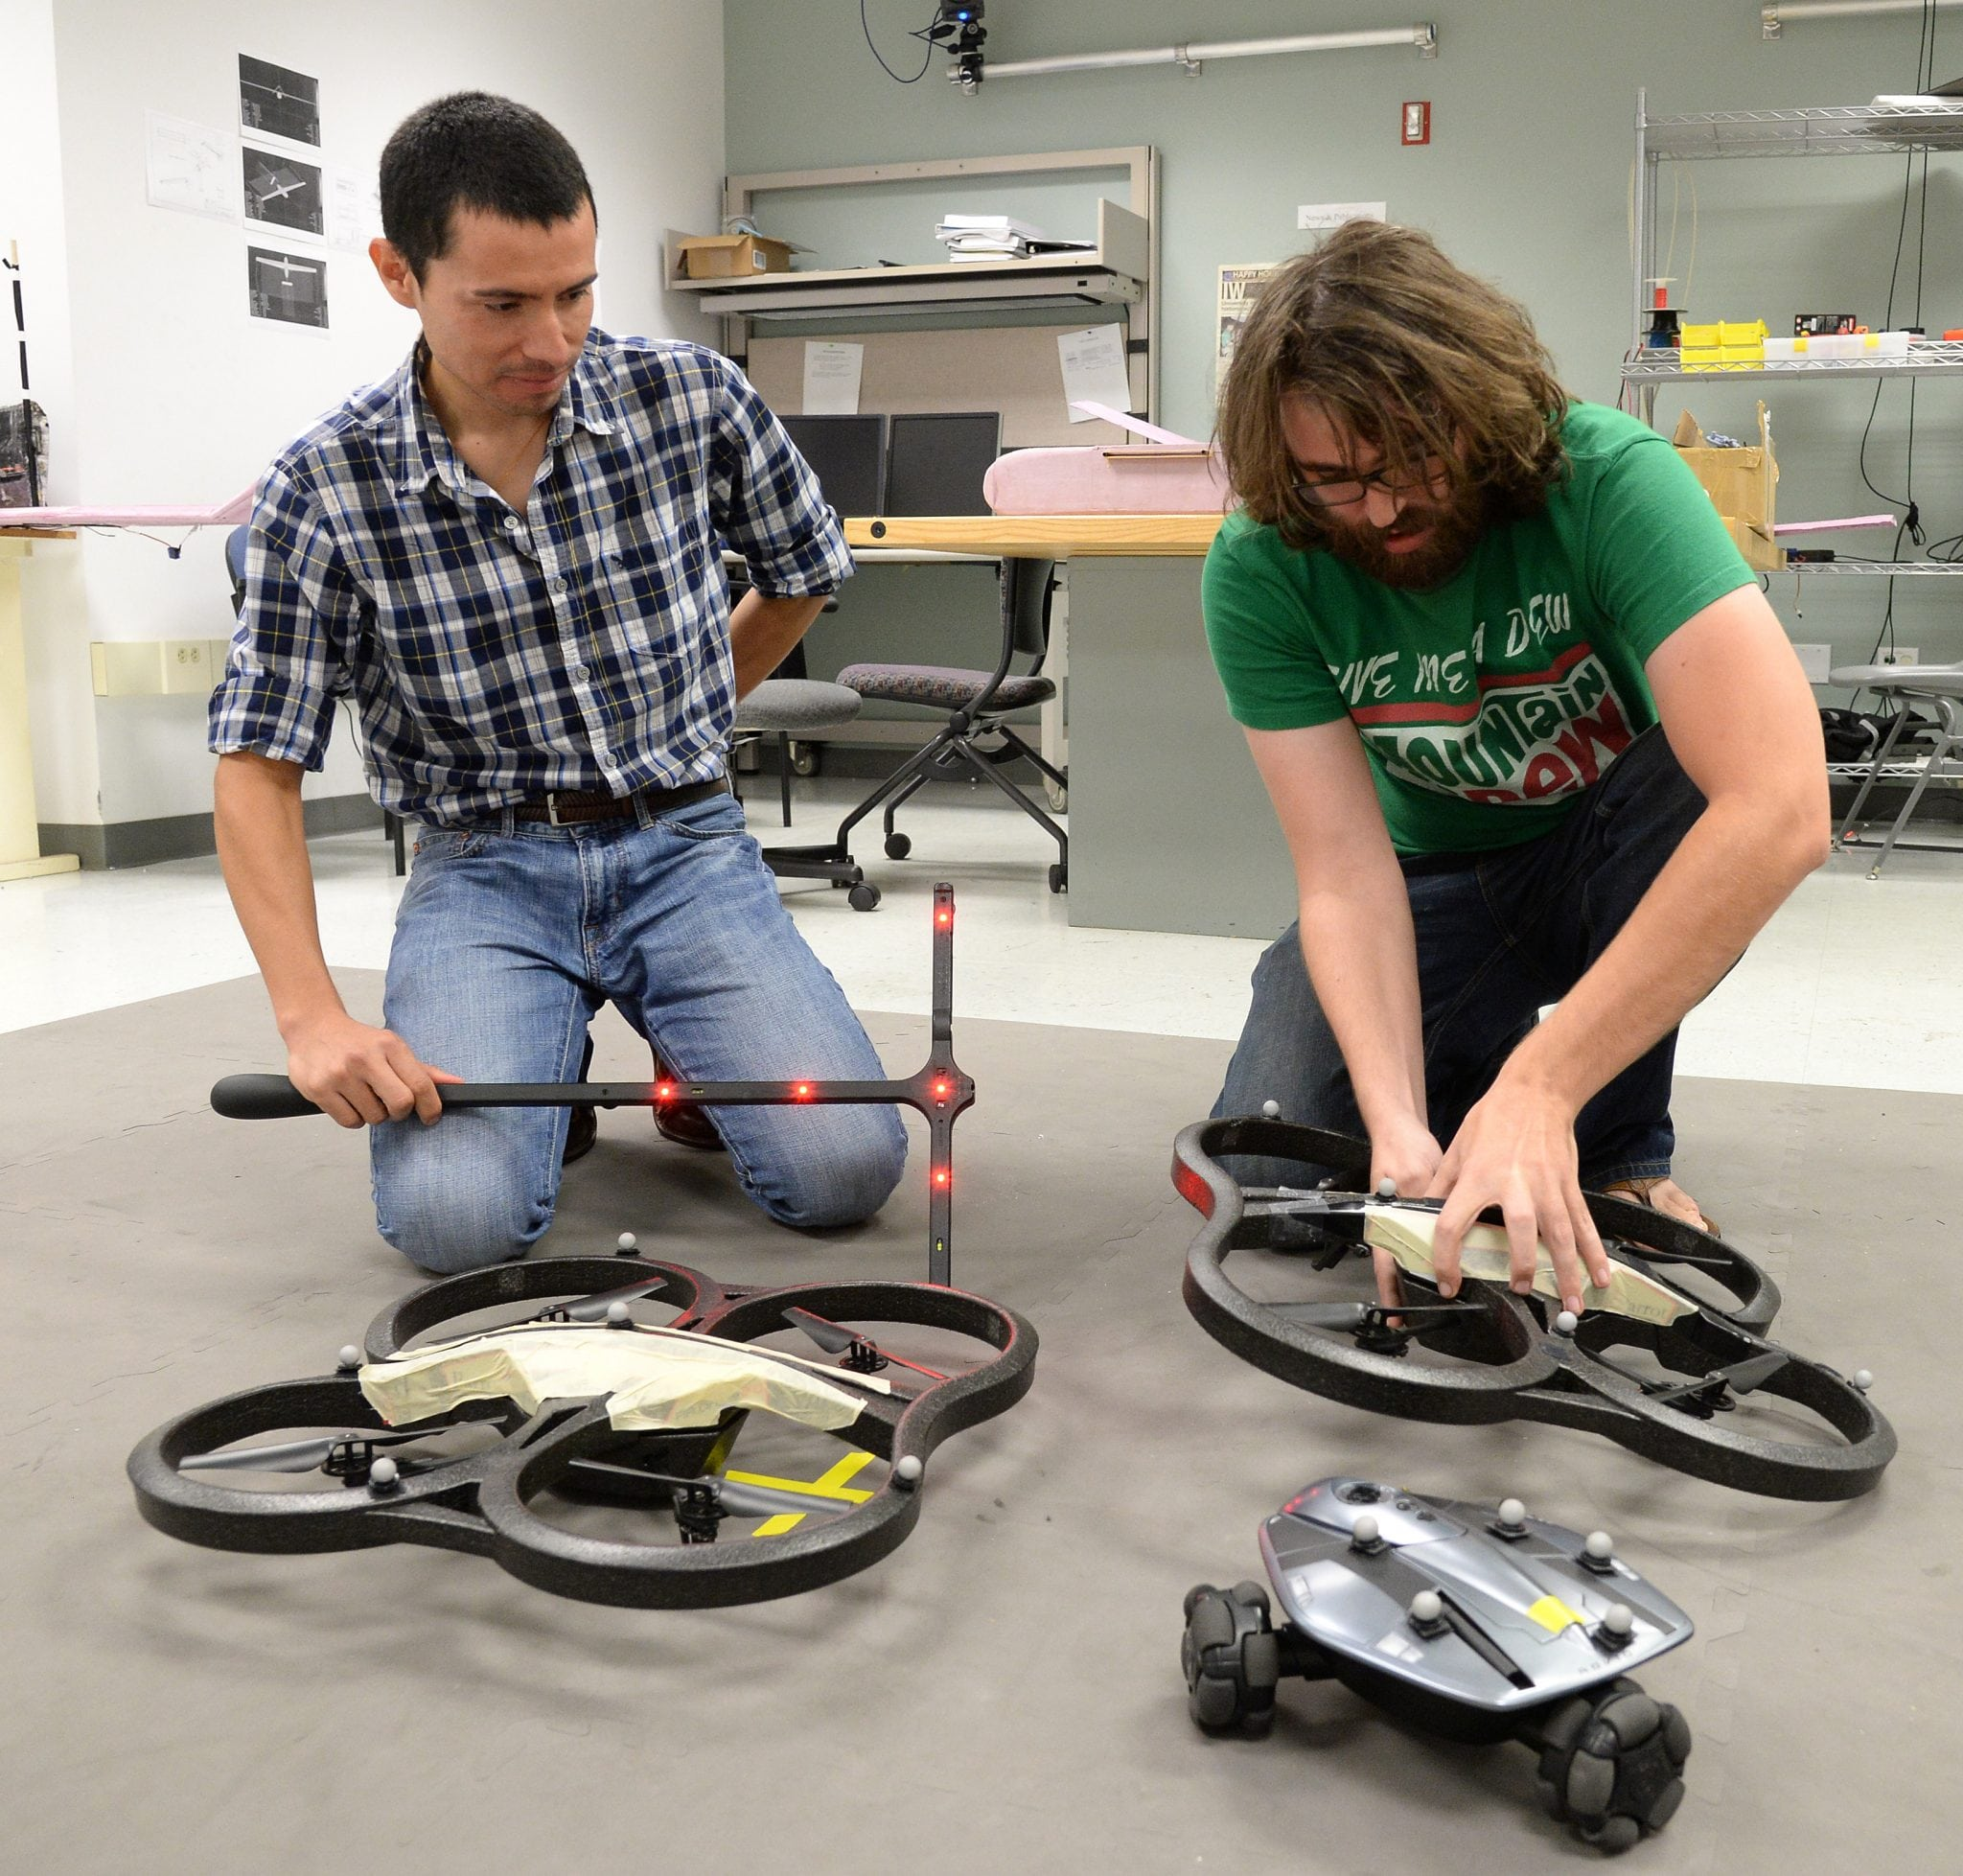 Luis Garcia Carrillo works with a student to test unmanned aerial vehicles capable of vertical flight